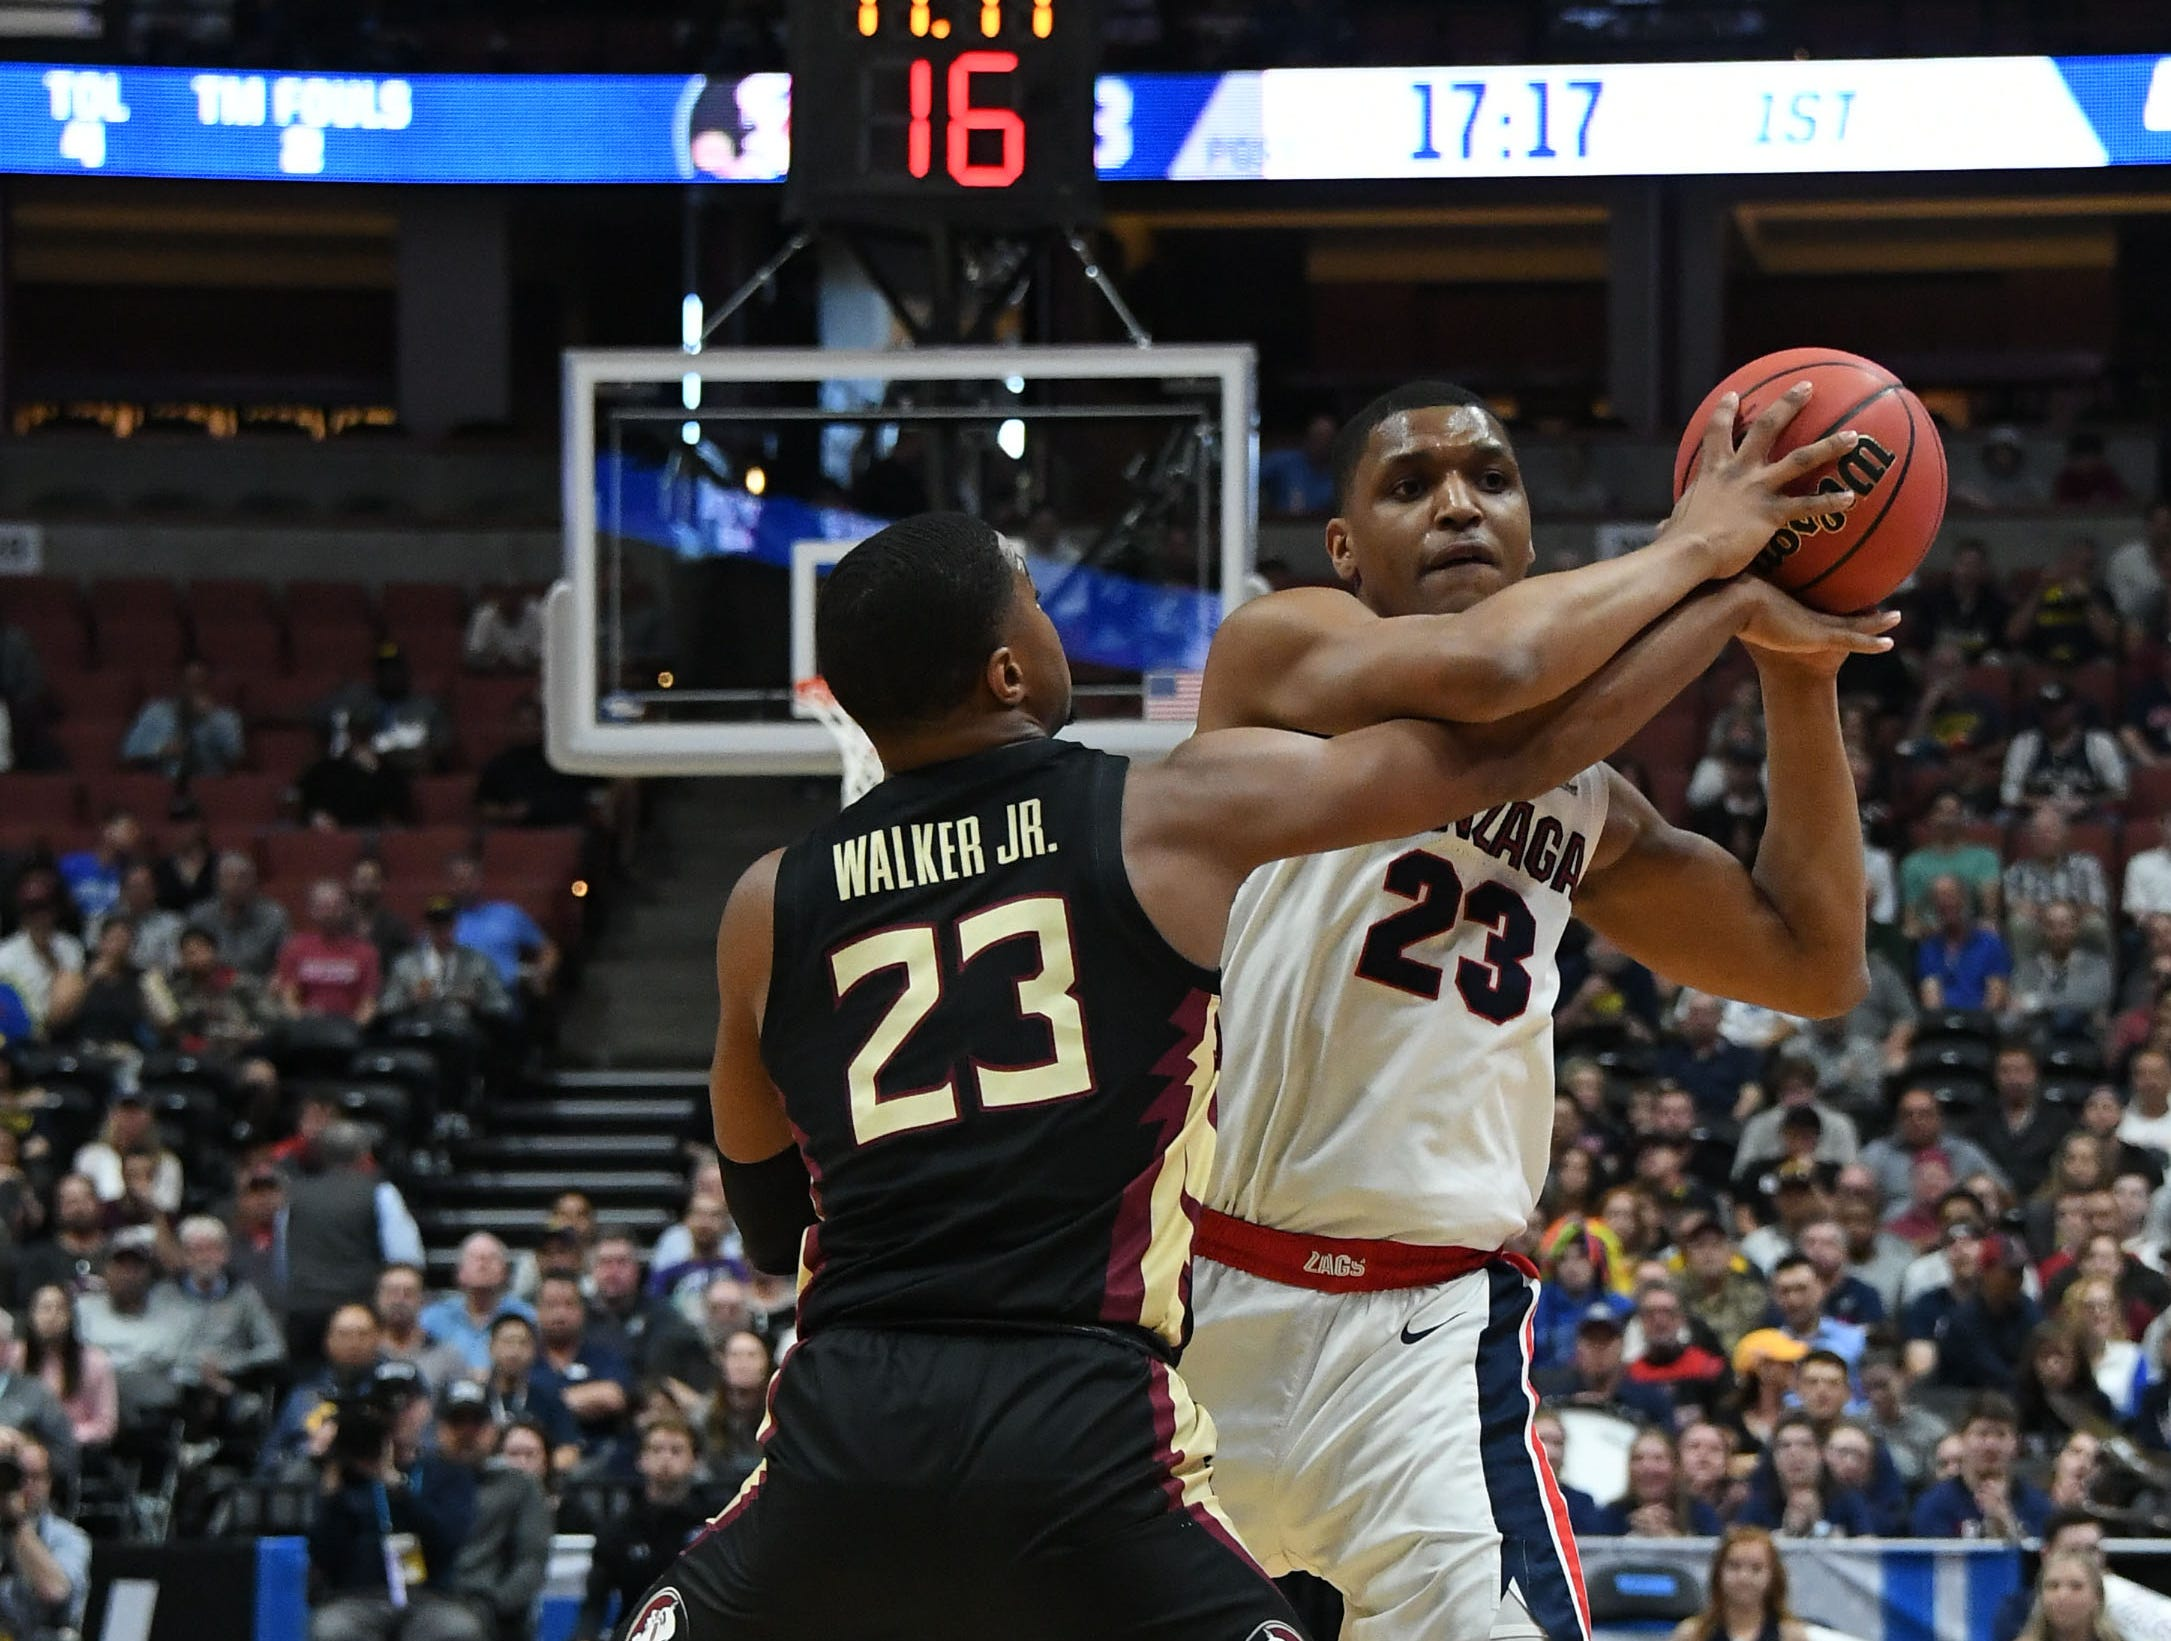 March 28, 2019; Anaheim, CA, USA; Gonzaga Bulldogs guard Zach Norvell Jr. (23) moves the ball against Florida State Seminoles guard M.J. Walker (23) during the first half in the semifinals of the west regional of the 2019 NCAA Tournament at Honda Center. Mandatory Credit: Richard Mackson-USA TODAY Sports